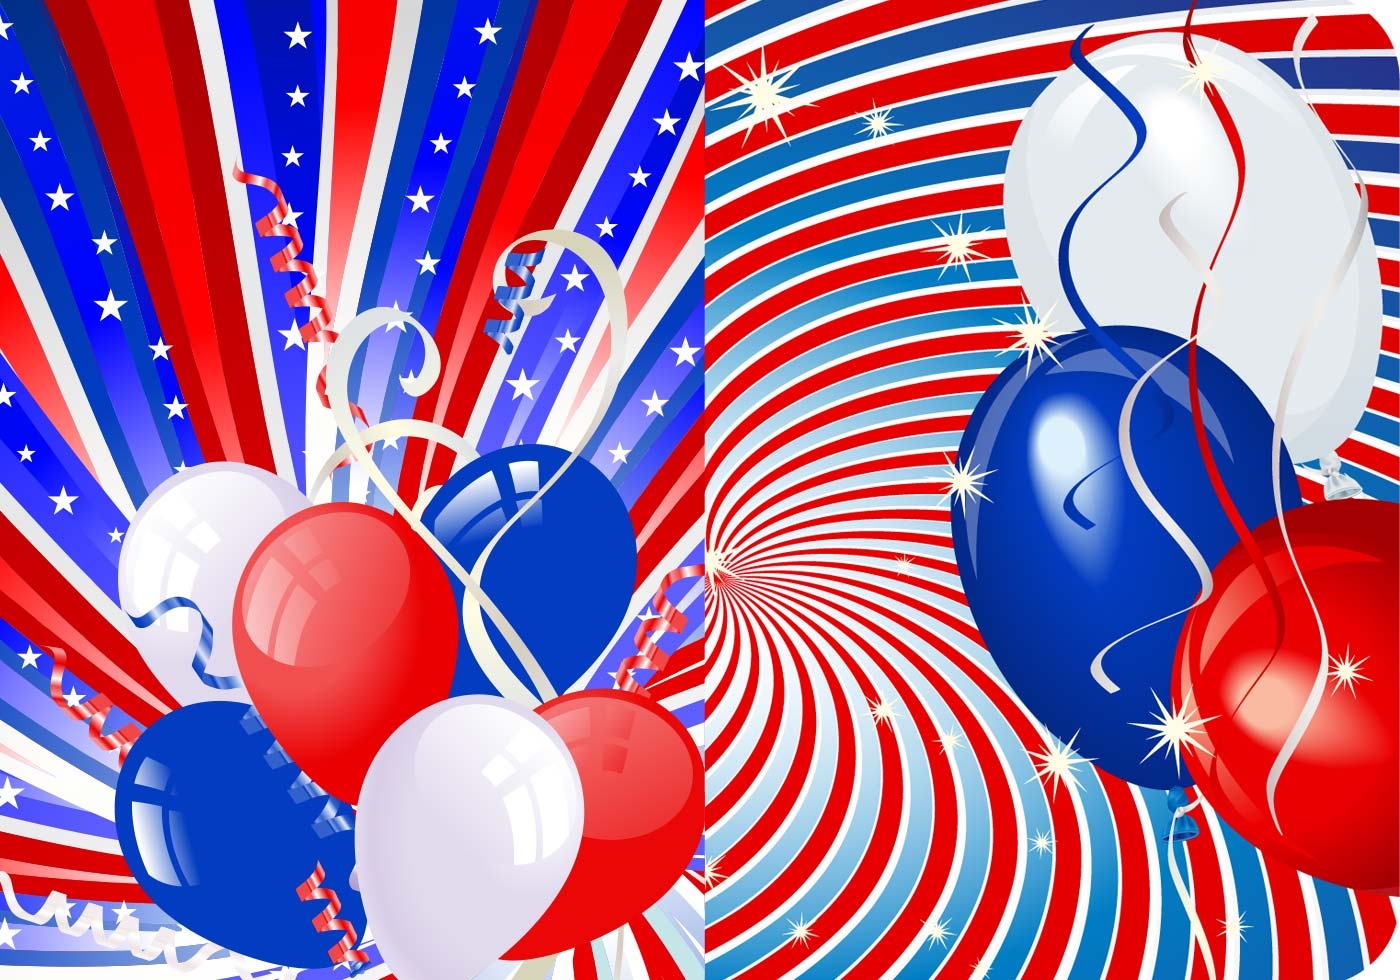 Stars, Stripes, and Balloons Vector Wallpaper Pack ...